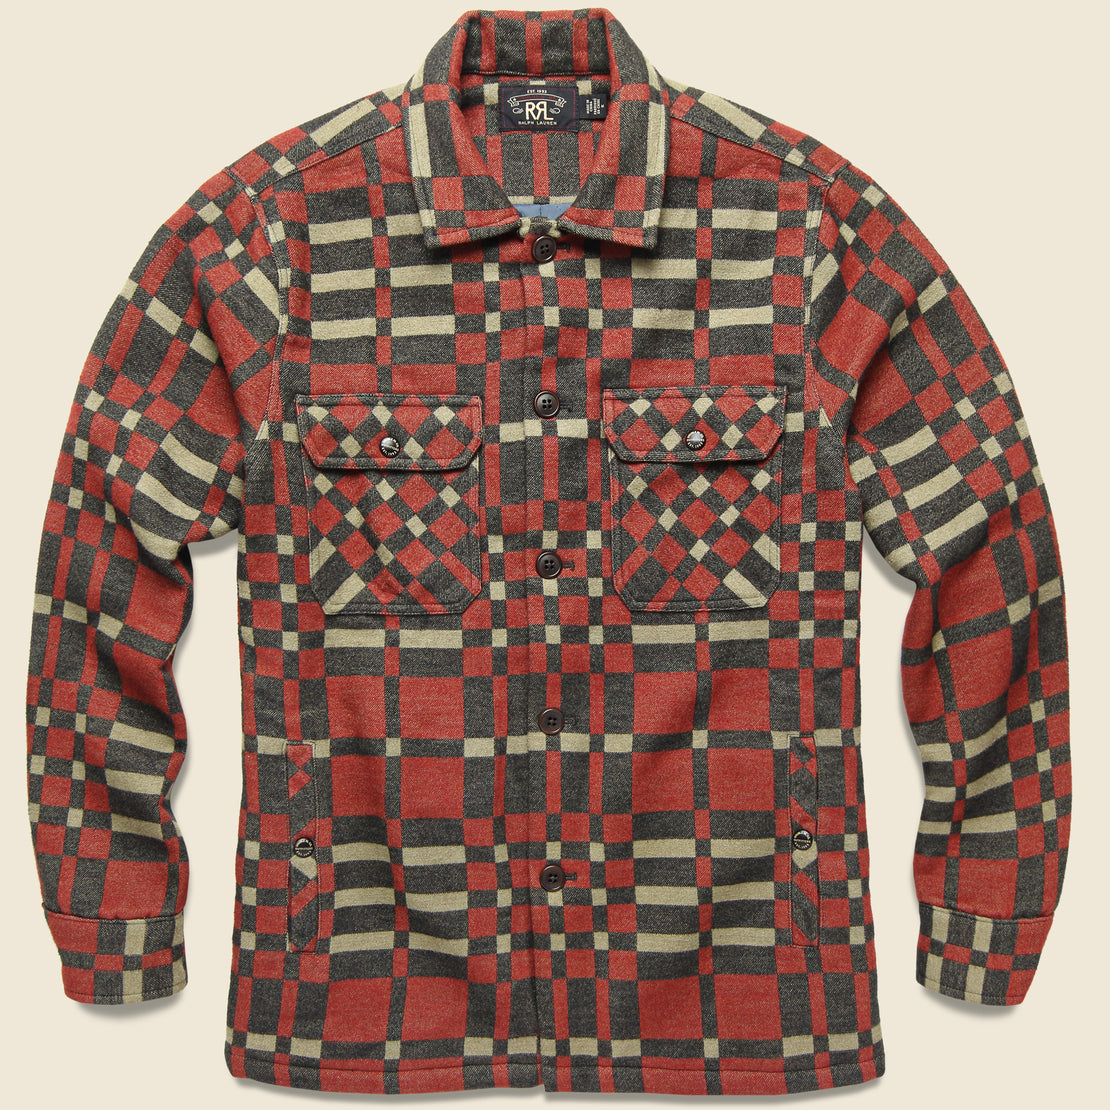 RRL Juno Jacquard Overshirt - Red/Black